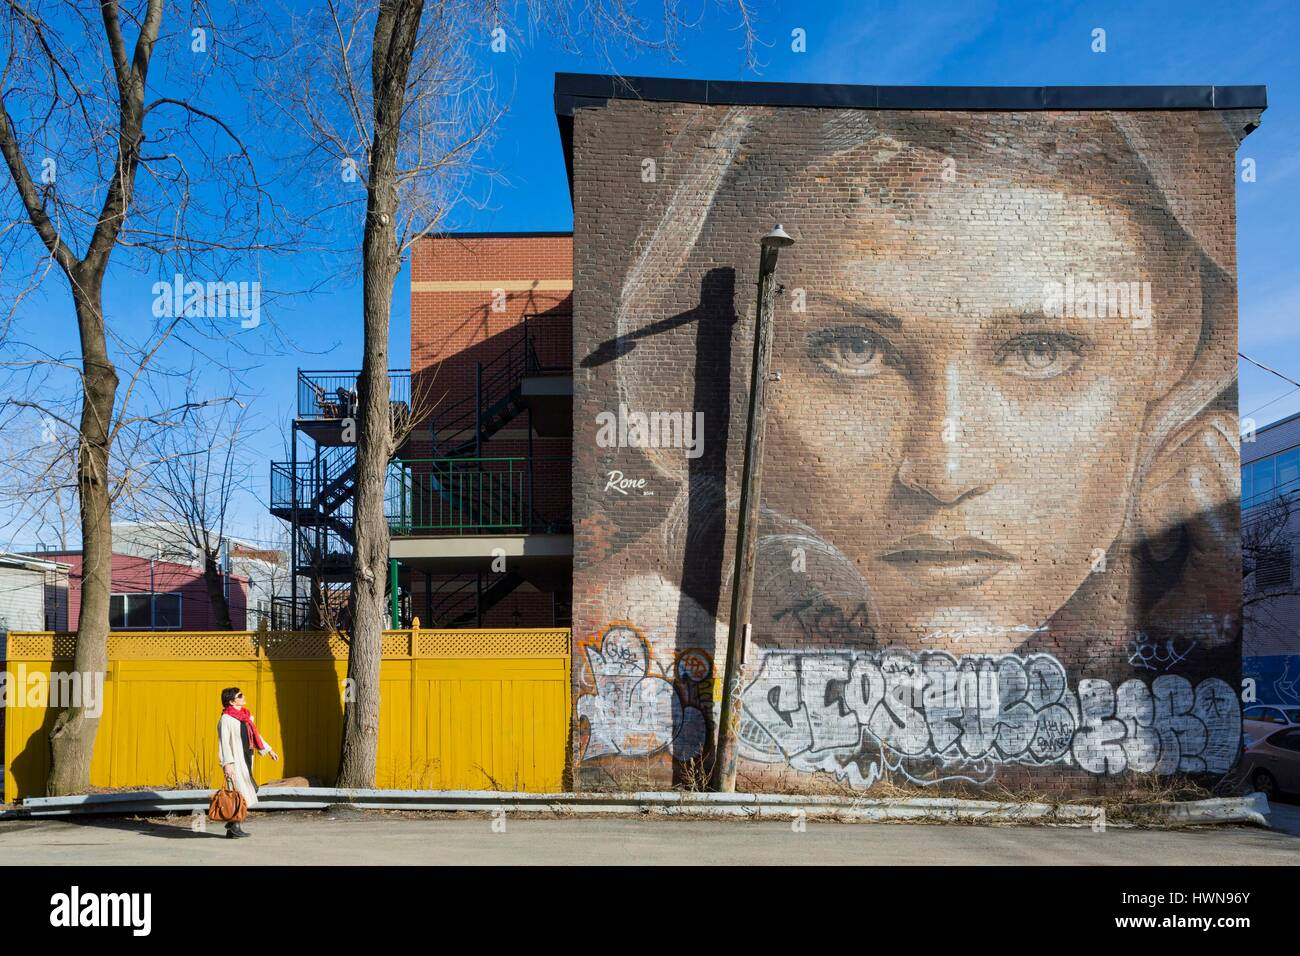 Canada, Province of Quebec, Montreal Celestine by RONE for the Mural 2014 festival The Australian artist braved Stock Photo